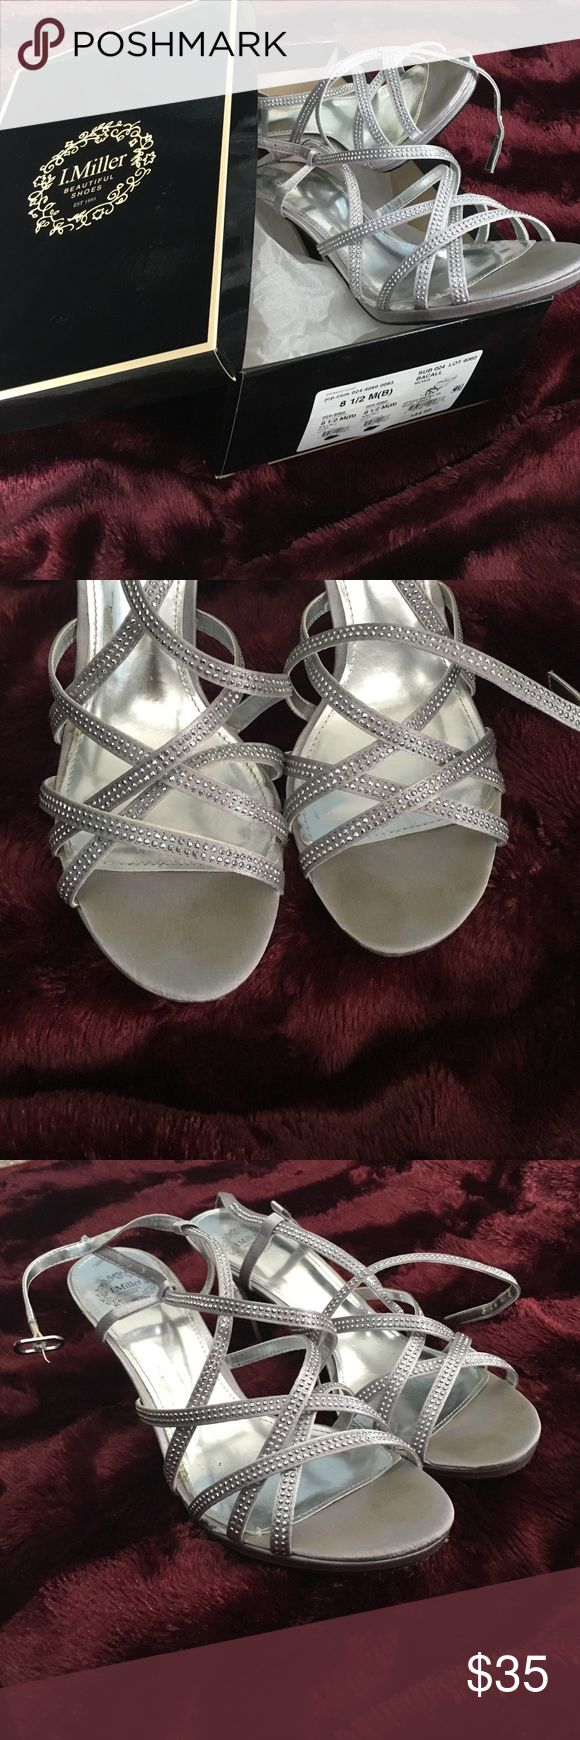 Silver Strappy Heels Worn once to my prom! They are scuffed some on the bottom but from the top look almost brand new! jcpenney Shoes Heels